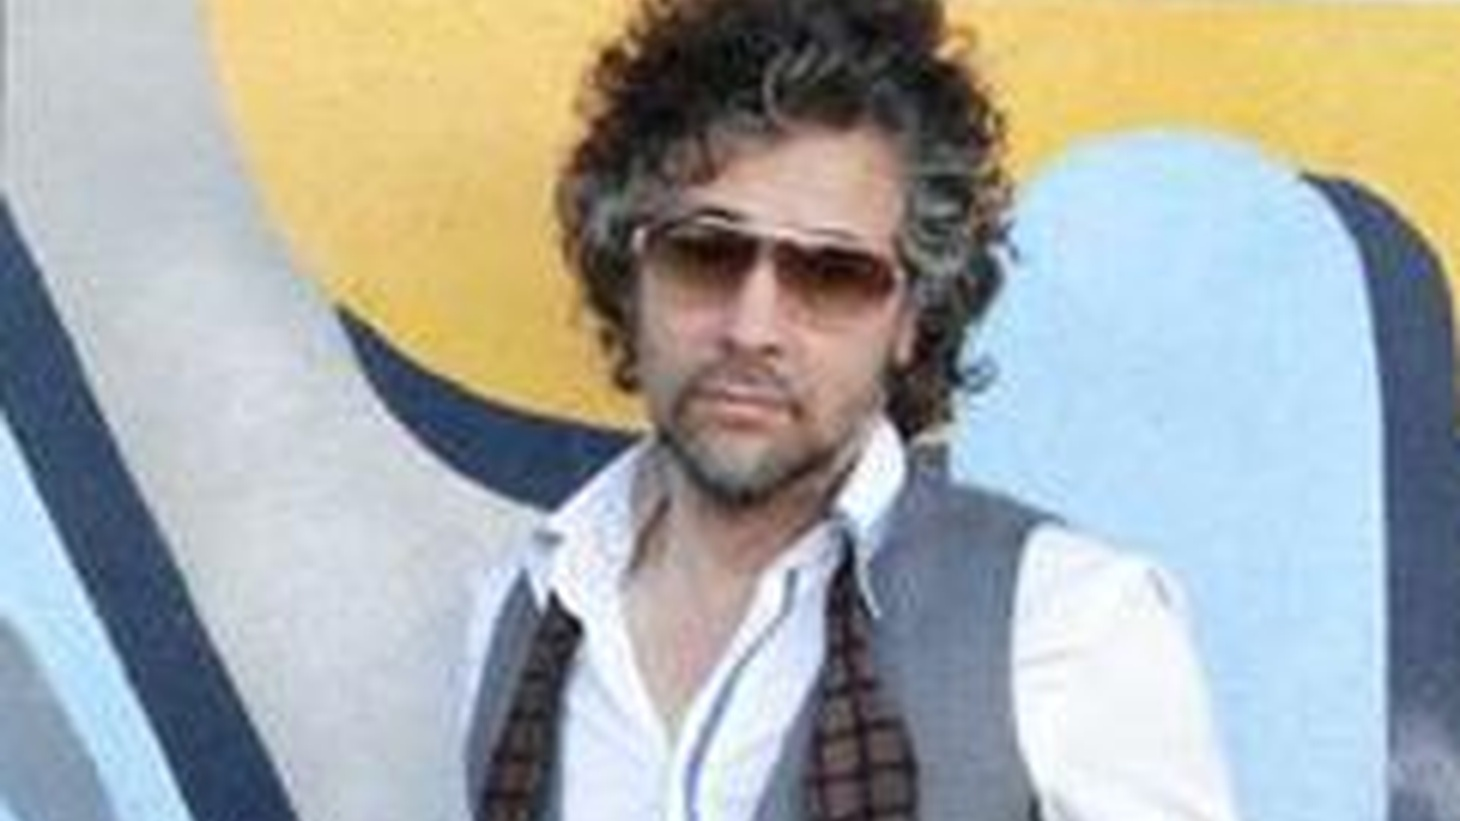 Flaming Lips frontman Wayne Coyne shares his favorite songs when he returns as guest deejay on Morning Becomes Eclectic at 11:15am.